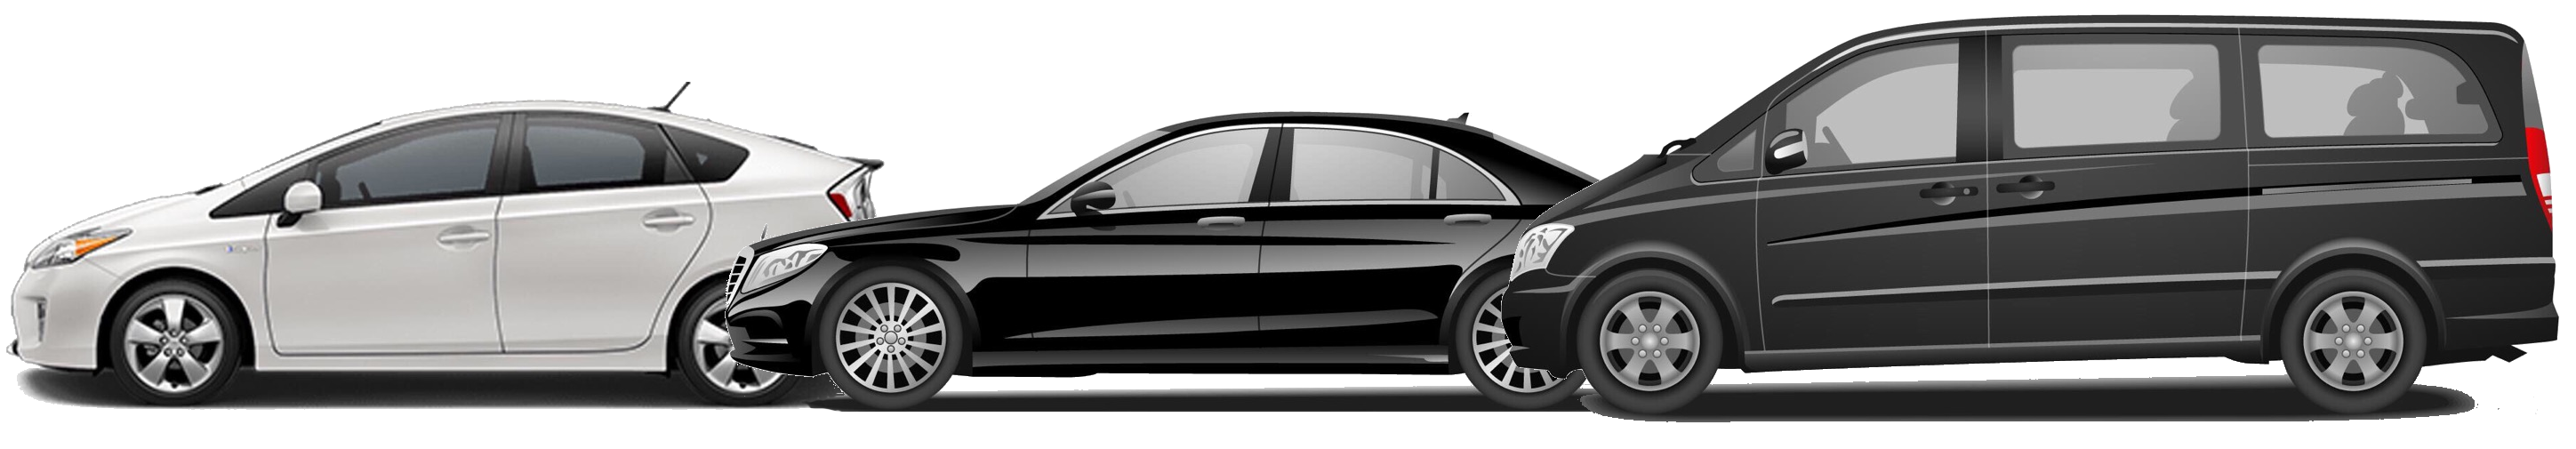 Best Cab Facilities Provided By Us Email Us On Events Flit Co Or Call 1855 710 0915 To Speak With Our Event Staff Today Cab Chauffeur Taxi